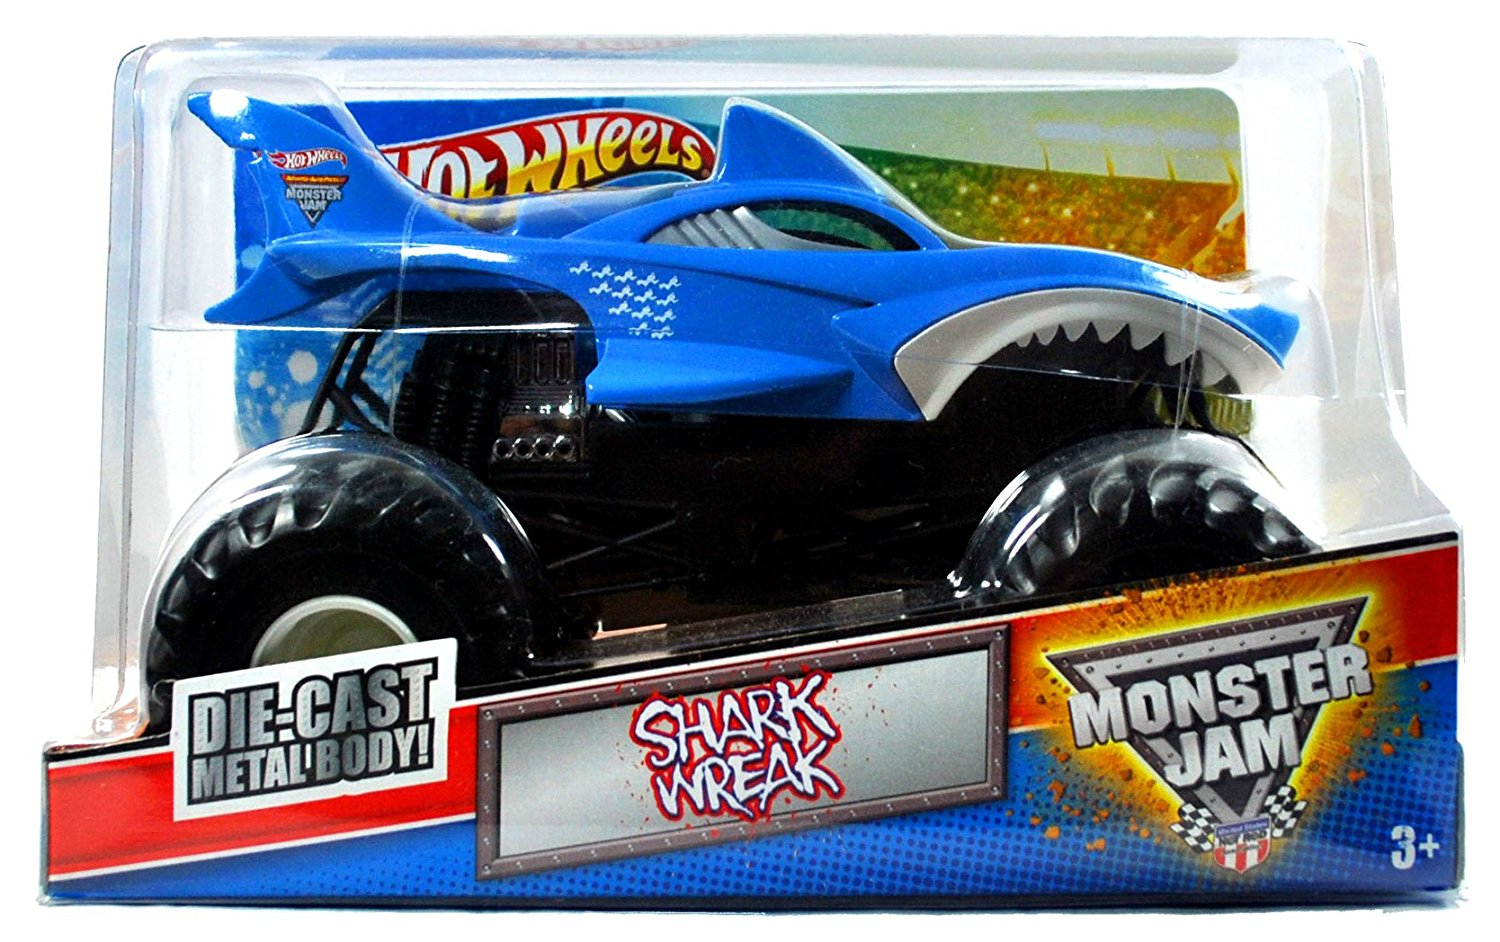 """Hot Wheels Monster Jam 1:24 Scale Die Cast Metal Body Official Monster Truck 2011 Series #T8511 - SHARK WREAK with Monster Tires, Working Suspension and 4 Wheel Steering (Dimension : 7"""" L x 5-1/2"""" W x 4-1/2"""" H)"""